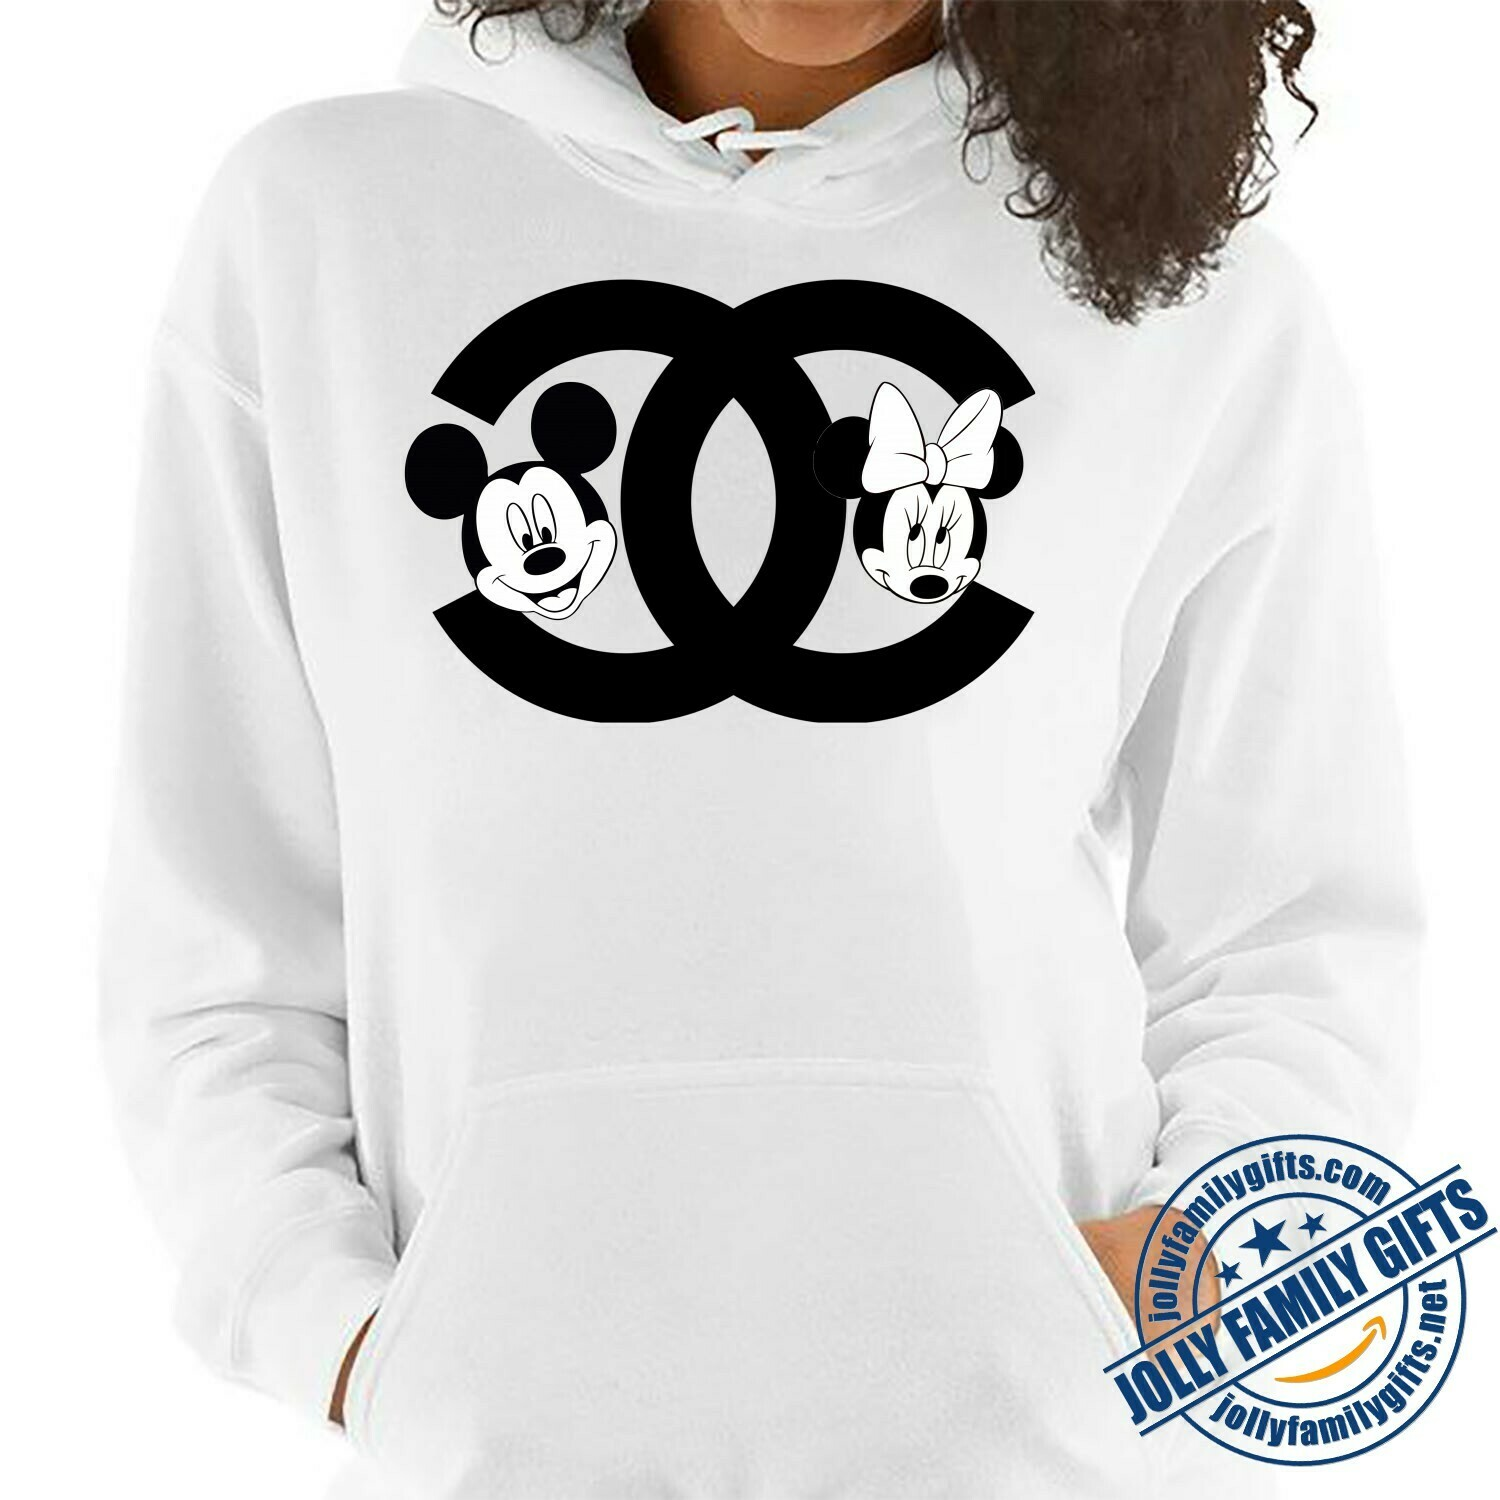 Mickey Minnie Disney Chanel Chanel tshirt, Fashion shirt, Men and Women shirt, Vintage fashion tshirt Fashion shirt vintage tshirt shirt Unisex T-Shirt Hoodie Sweatshirt Sweater for Ladies Women Men